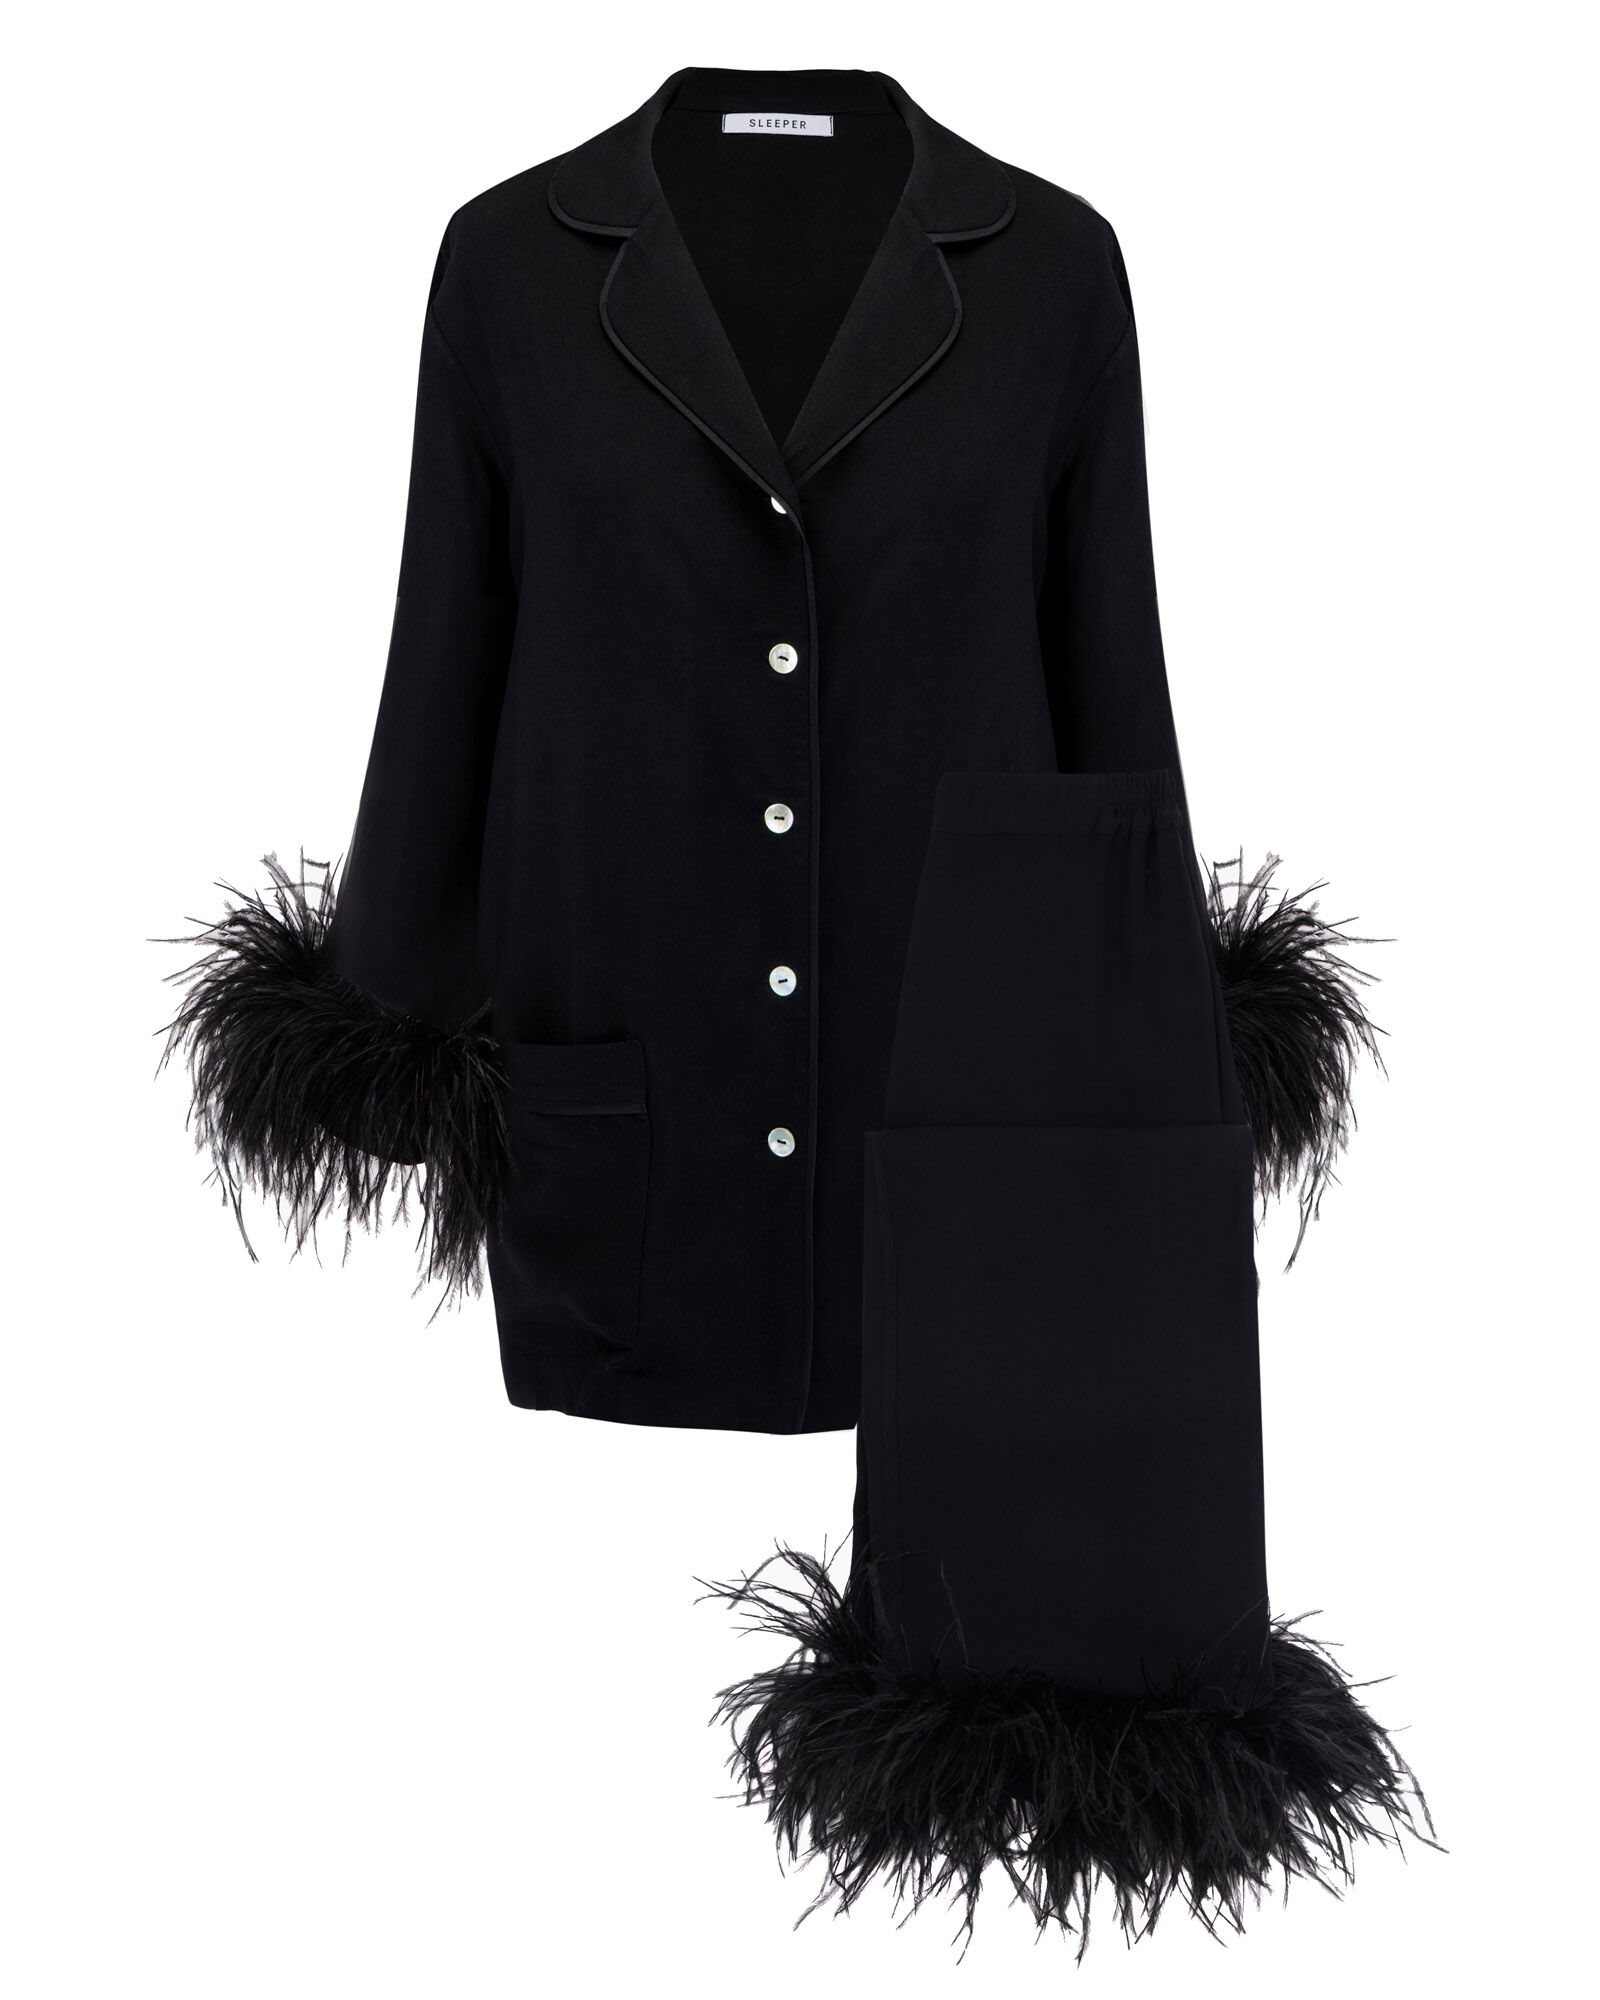 Feather-Trimmed Party Pajama Set, BLACK, hi-res